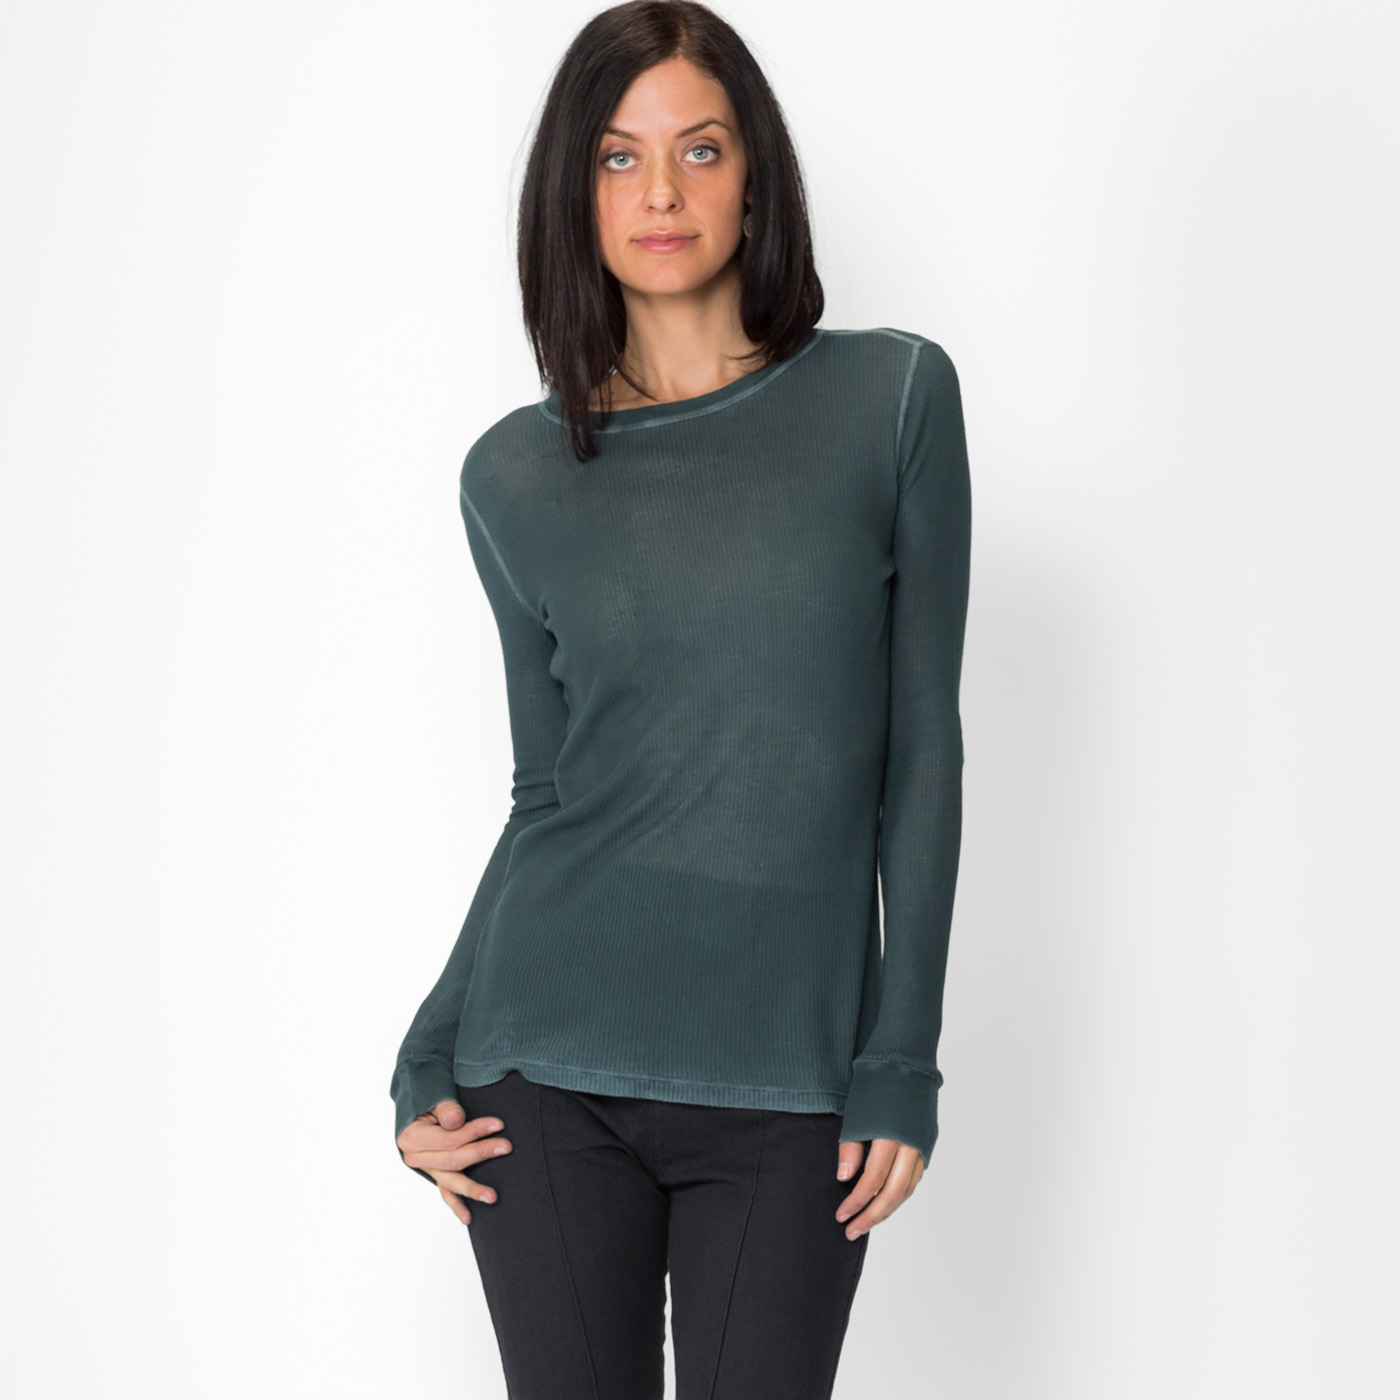 Cotton citizen long sleeved thermal shirt womens apparel for Thermal shirt for women